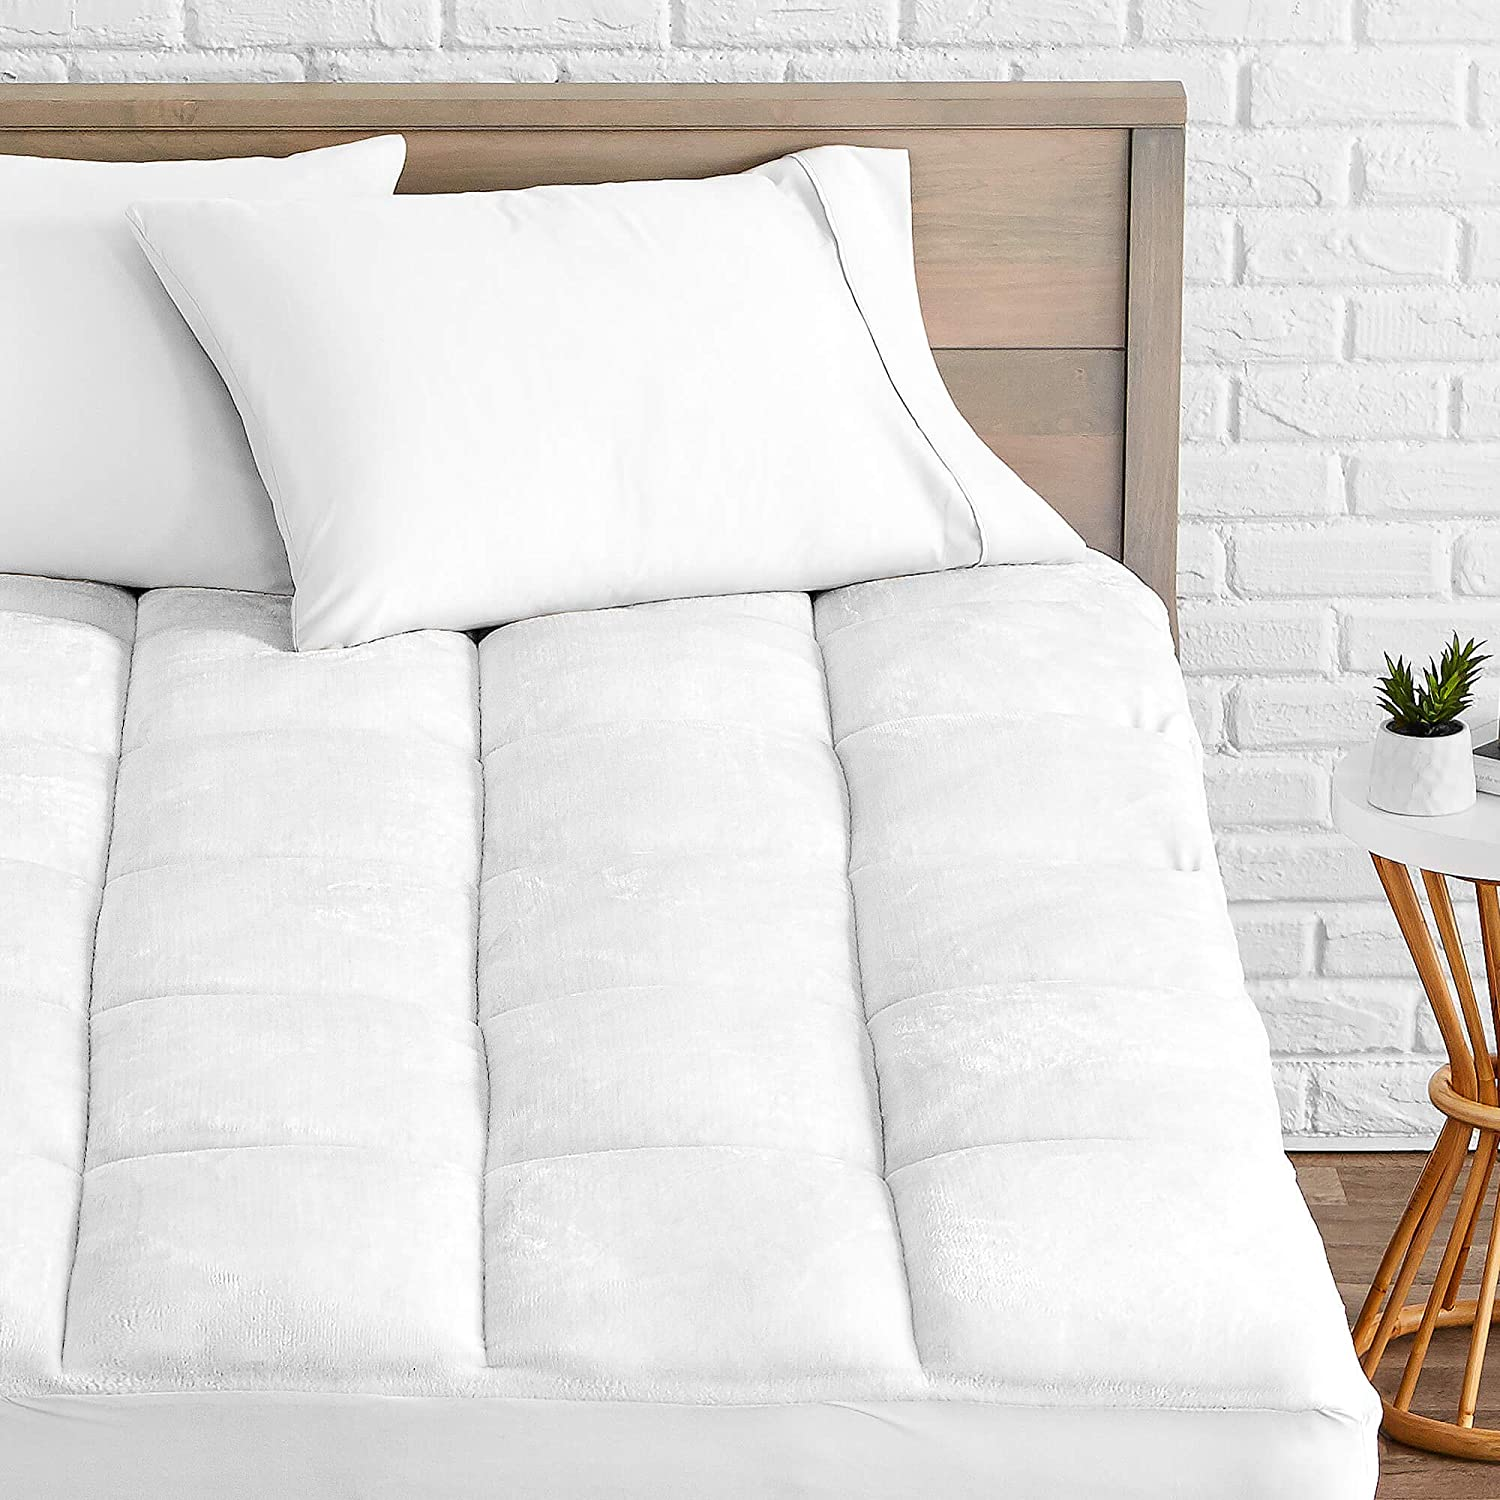 Bare Home Pillow-Top Twin Extra Long Mattress Pad